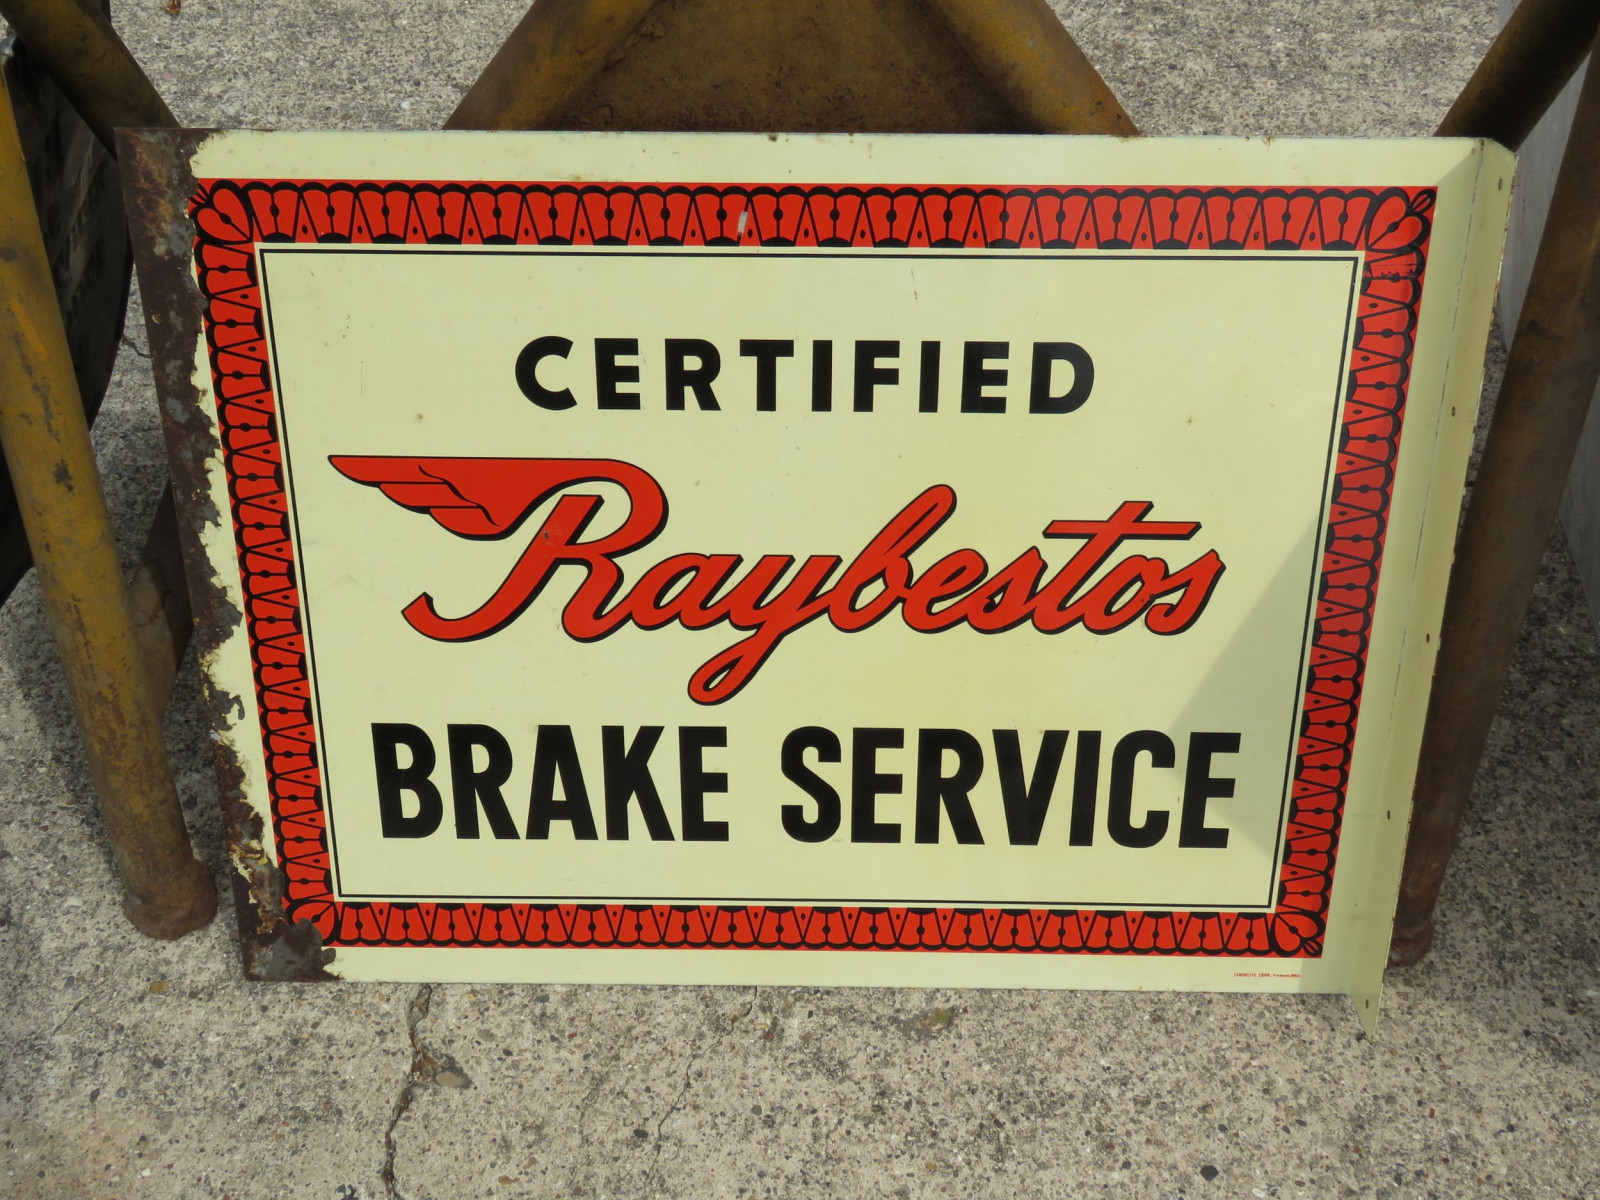 Certified Raybestos Brake Service DS Wall Flange - Image 2